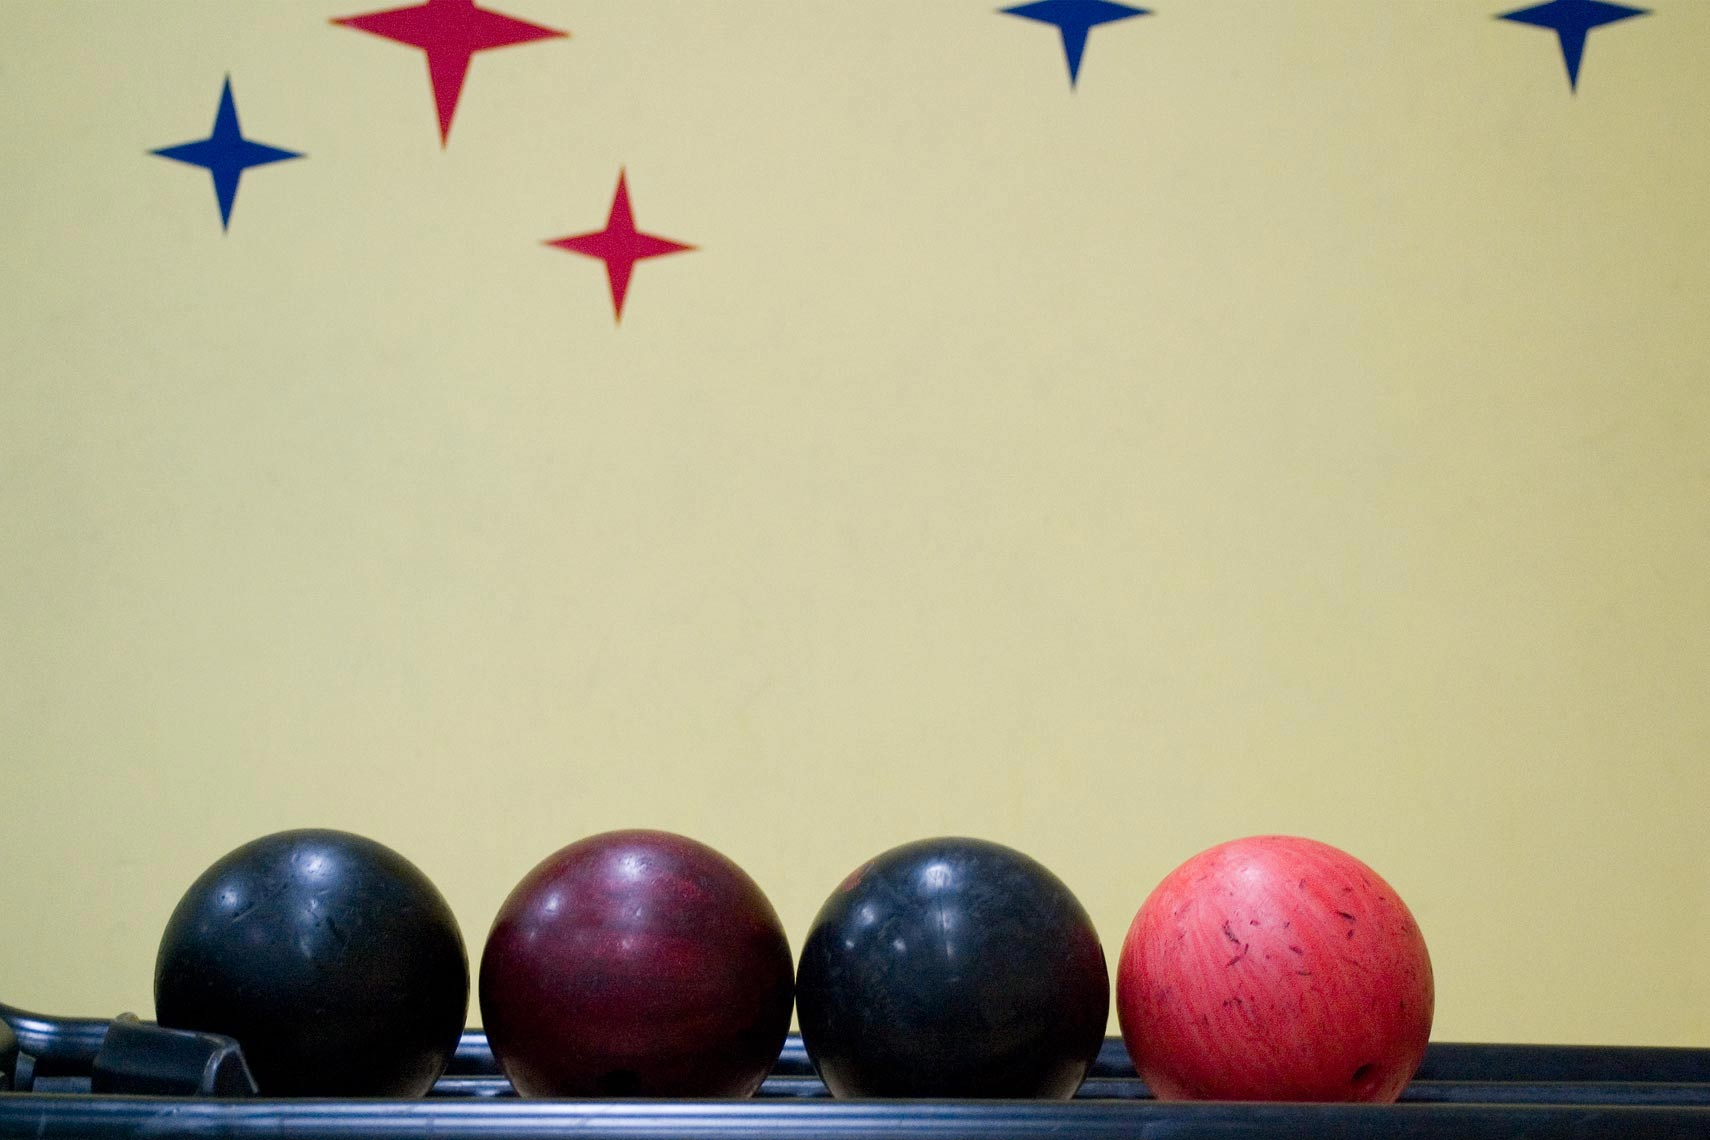 11_23-Bowling-Balls-Right_z17a